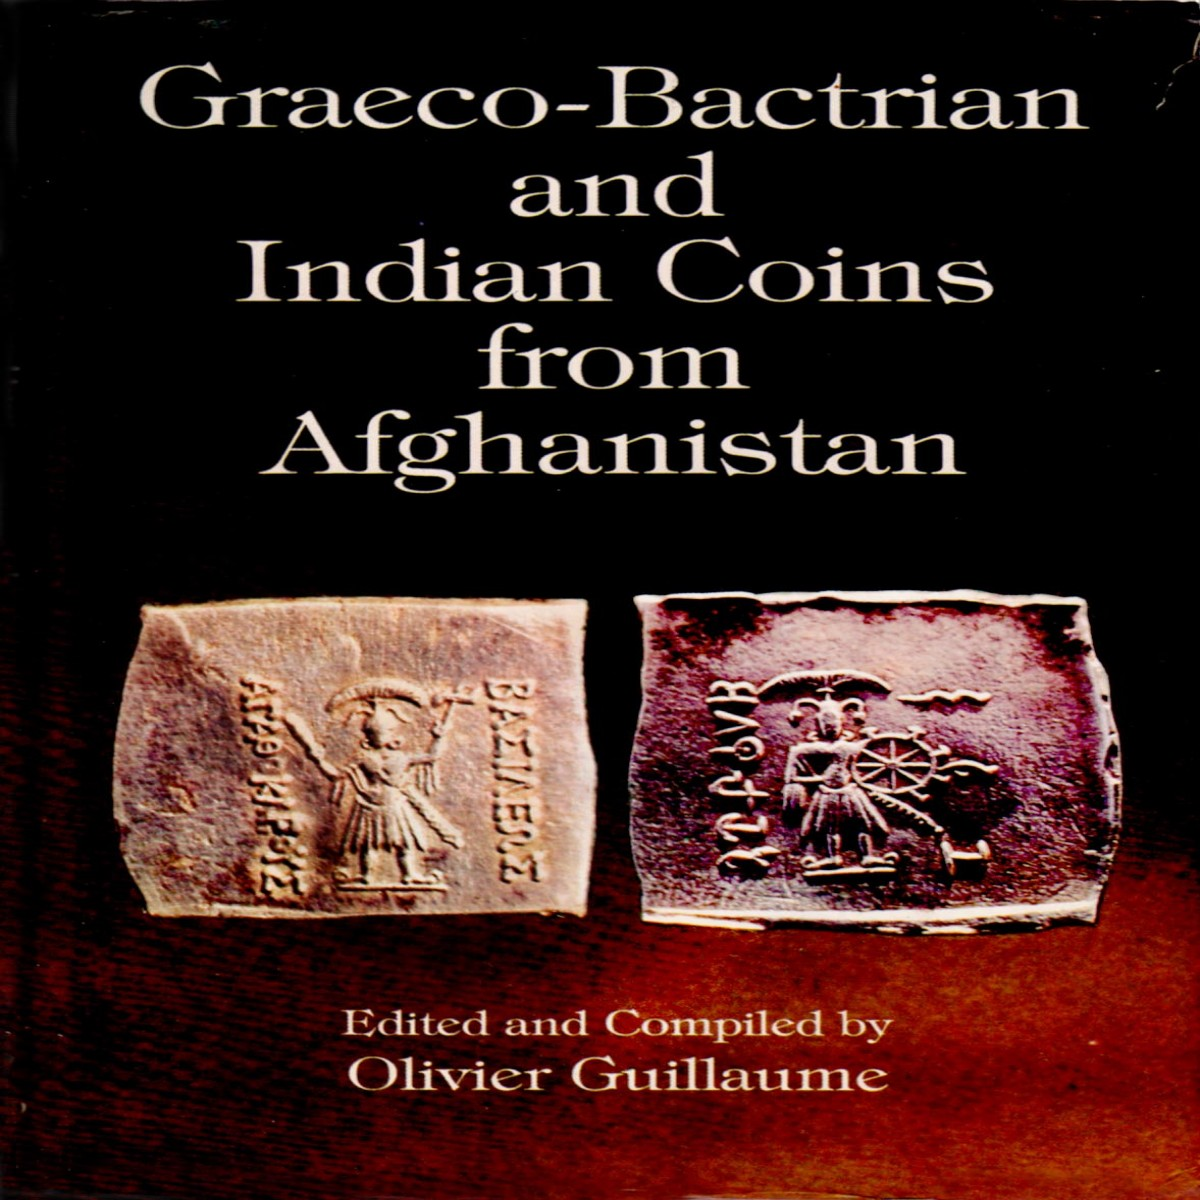 Graeco-Bactrian and Indian Coins From Afghanistan